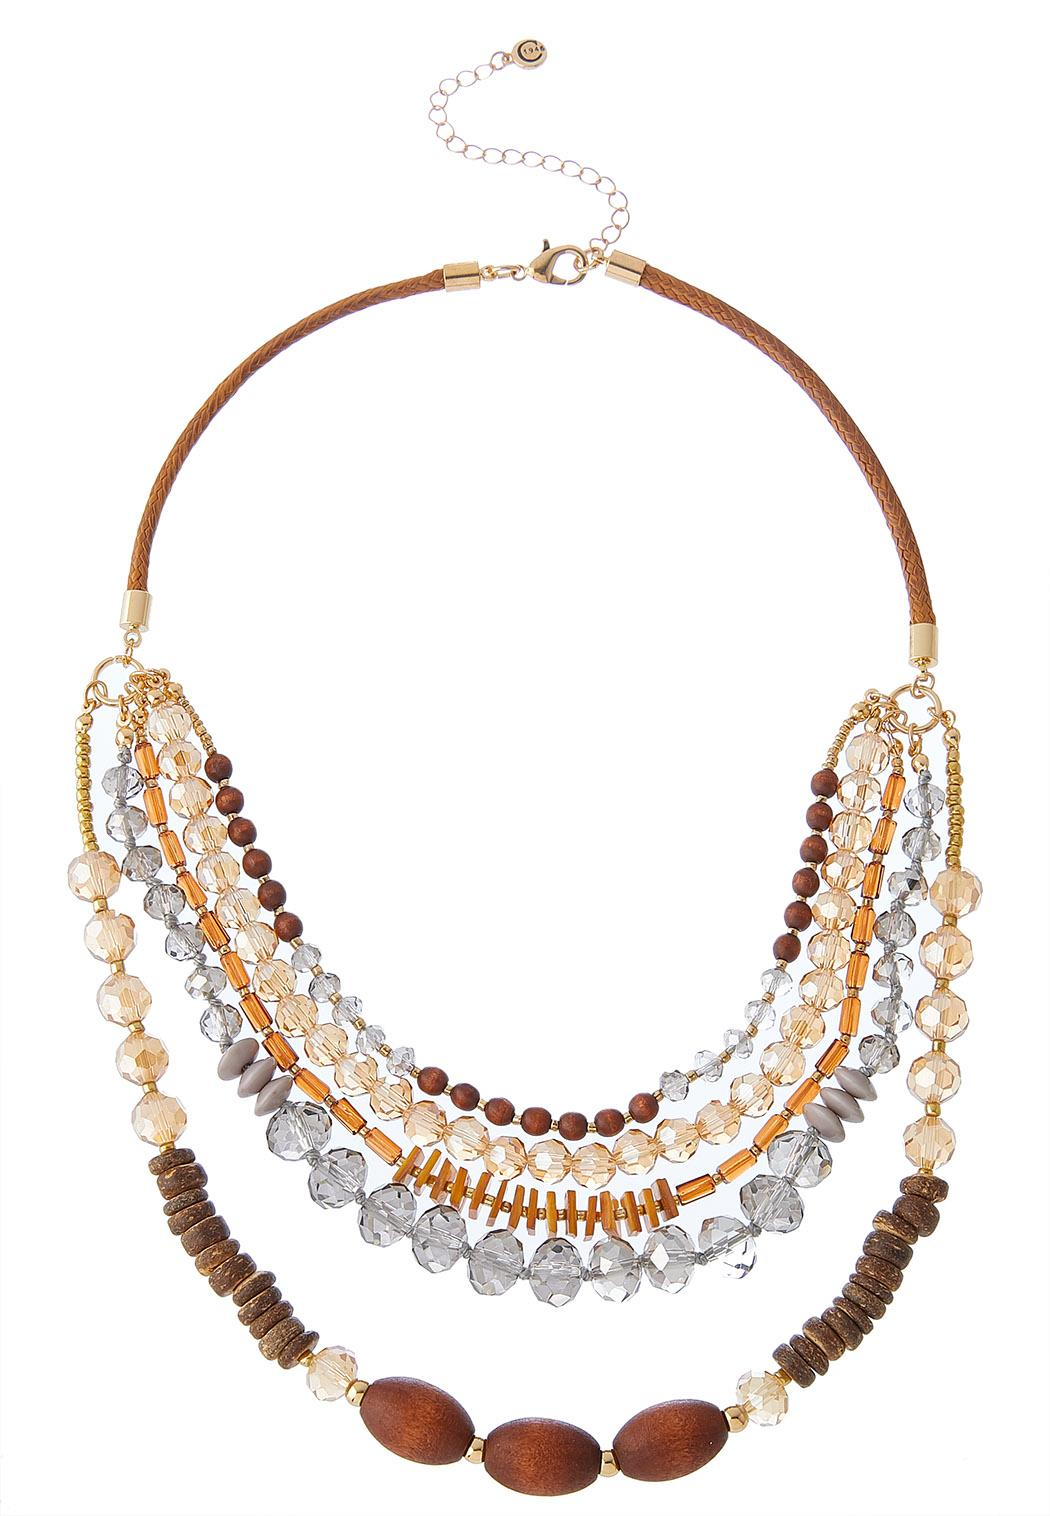 Layered Mixed Material Necklace